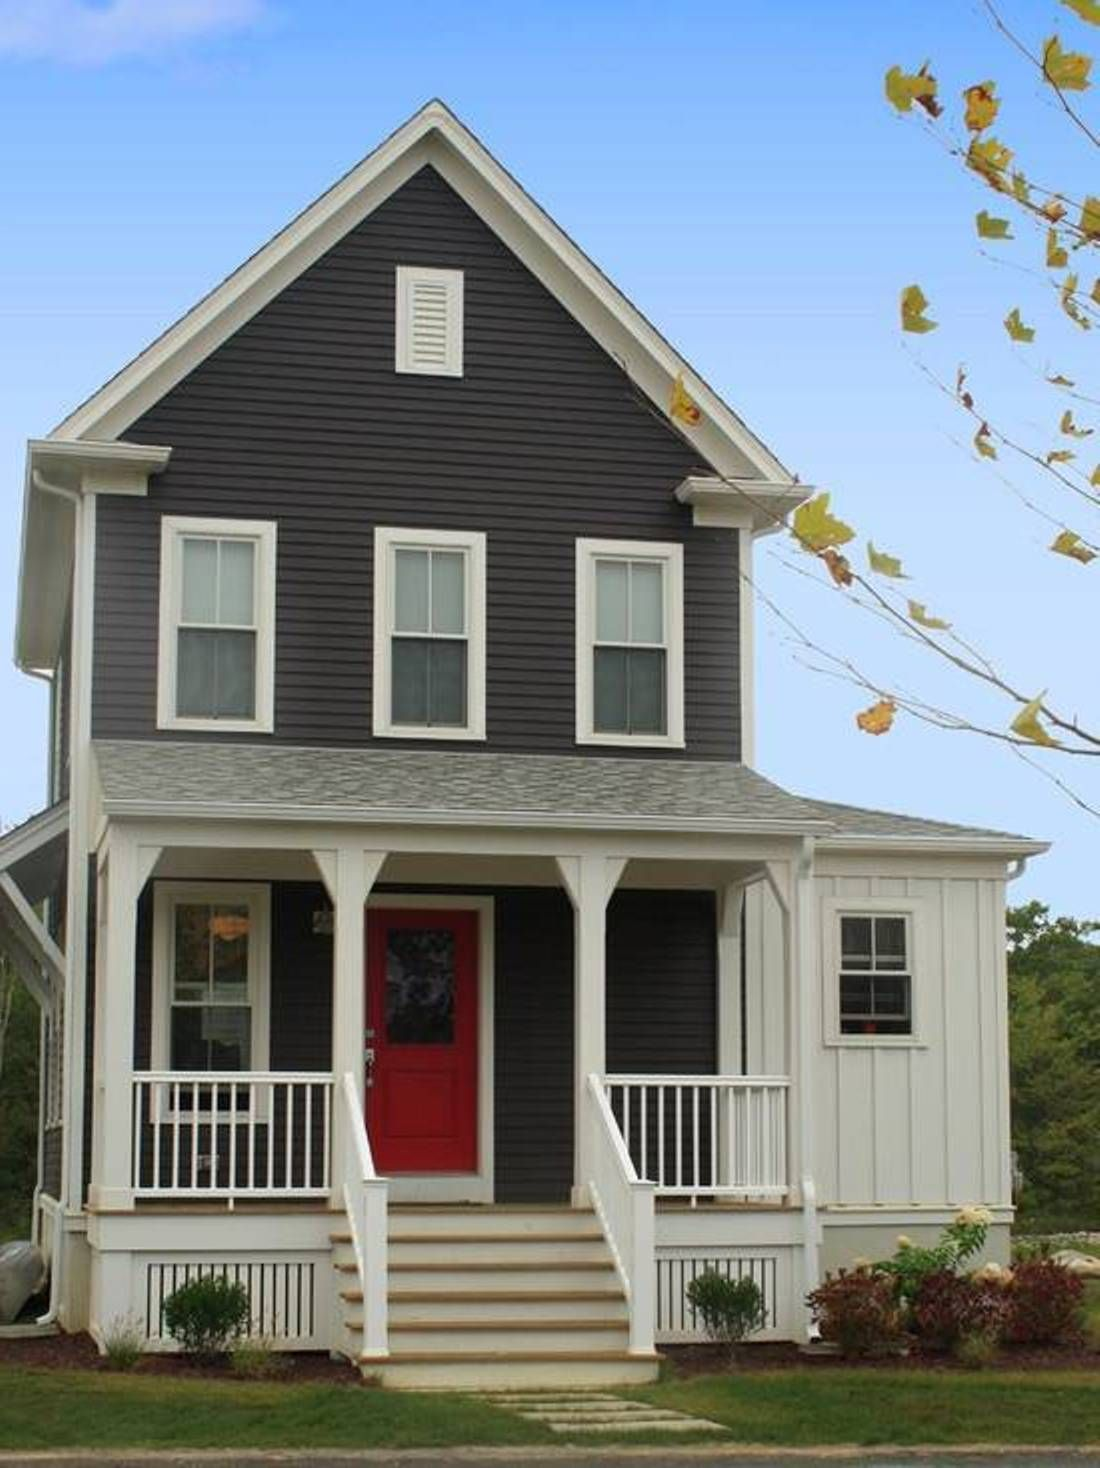 Awesome Exterior House Colors Hot Trends Homes Fast Turnaround New Largest Home Design Picture Inspirations Pitcheantrous